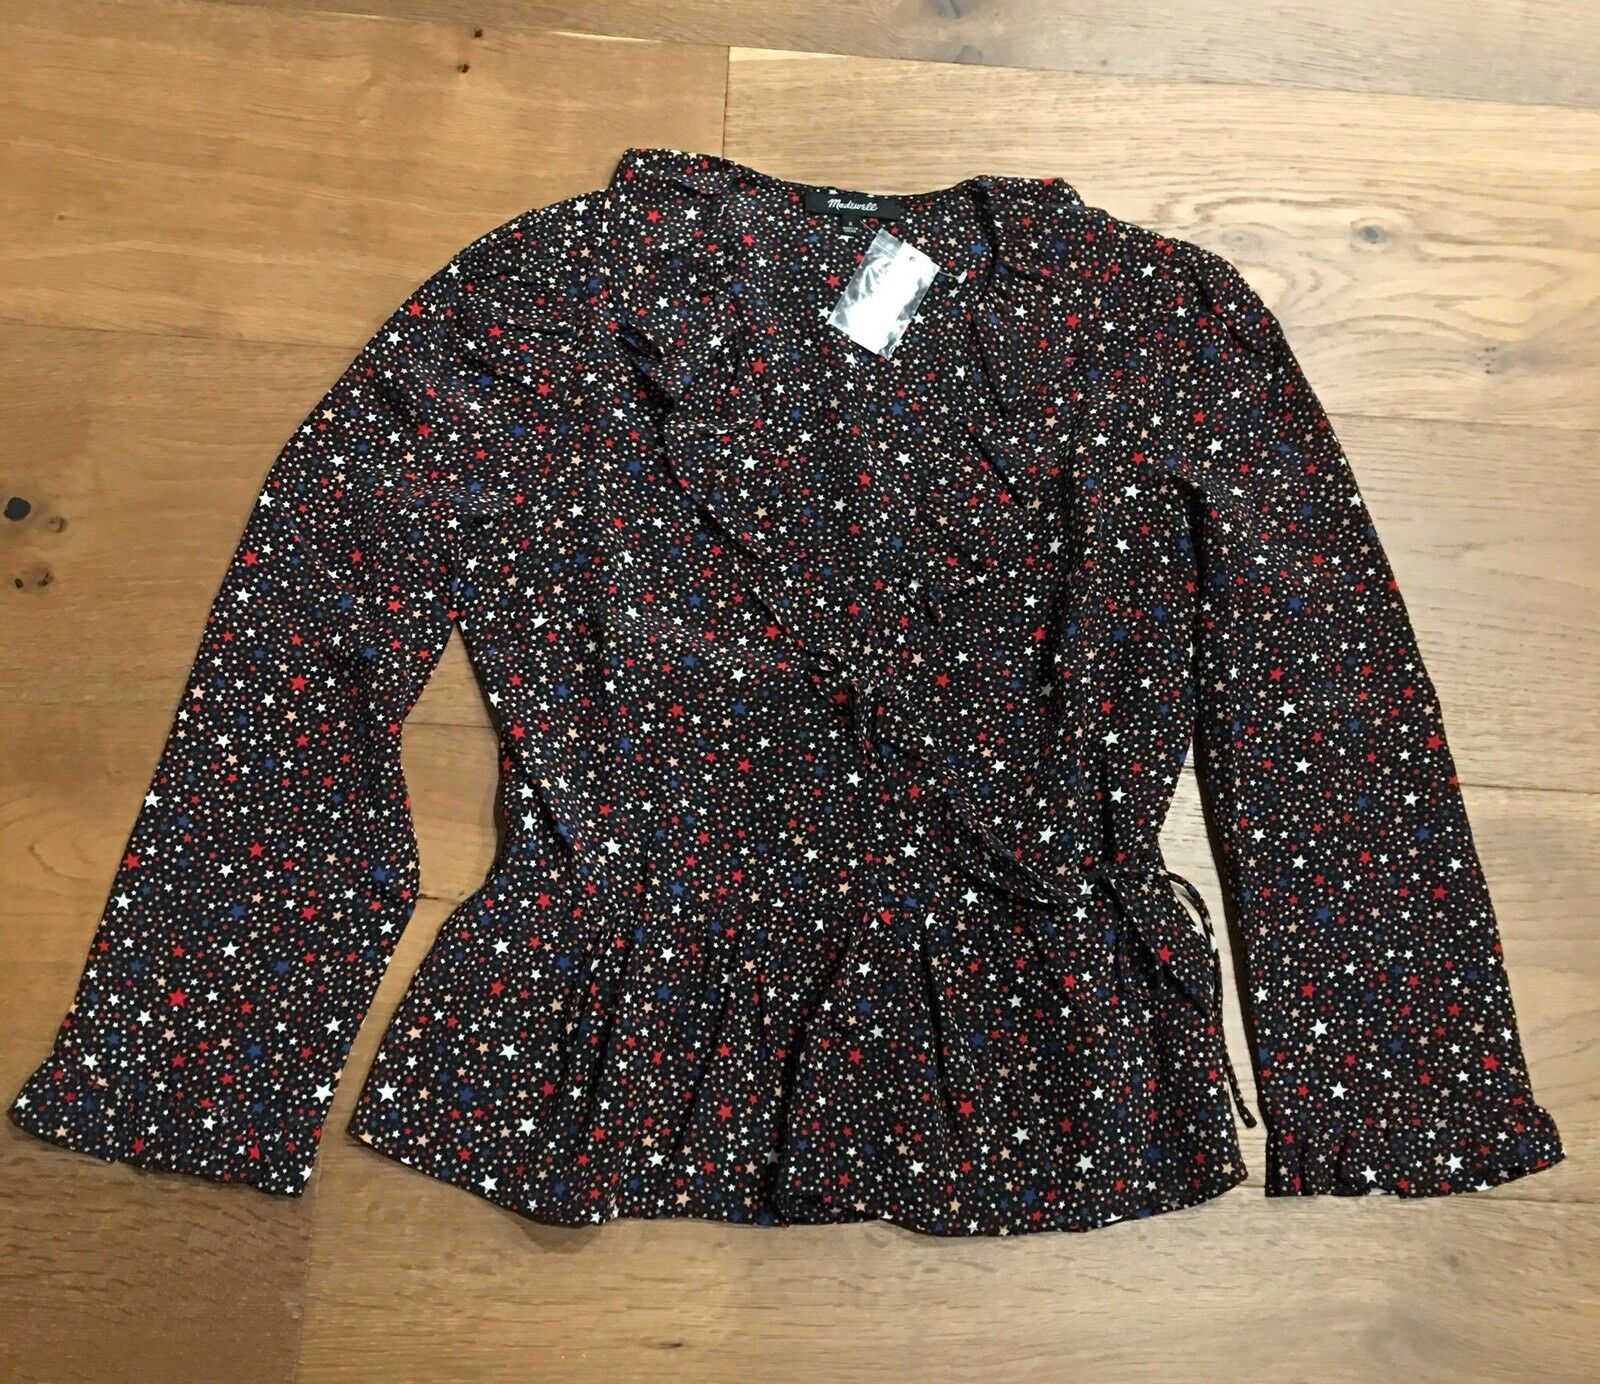 Authentic Madewell Silk Ruffle-Hem Wrap Top in Starry Night XL, NWT